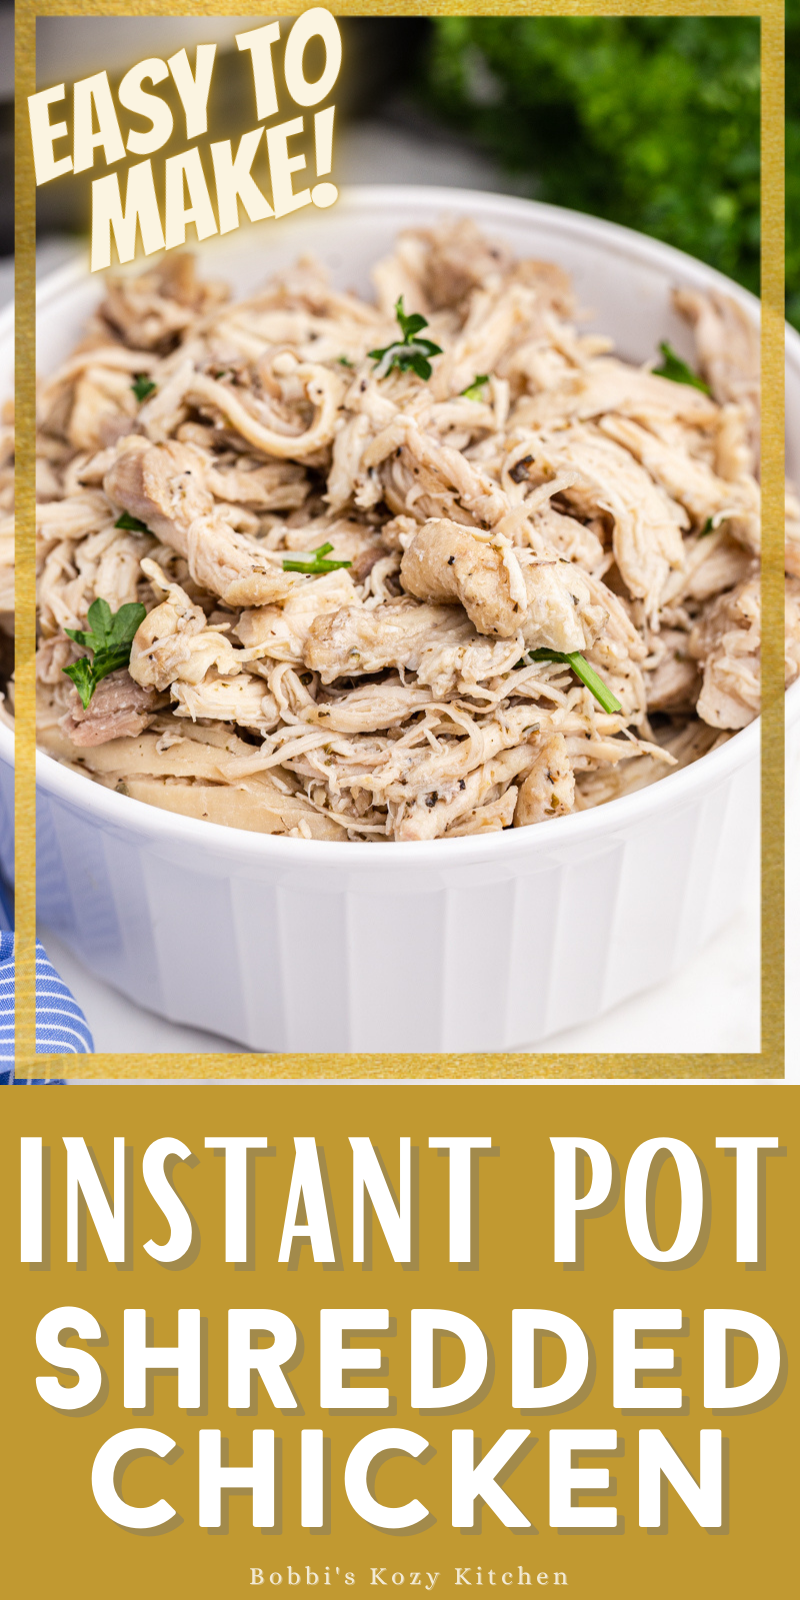 Instant Pot Shredded Chicken - Shredded chicken is a great way to meal prep your keto or low carb meals for the week and it doesn't get any easier than cooking it in the Instant Pot! #keto #lowcarb #chicken #mealprep #instantpot #easy #recipe